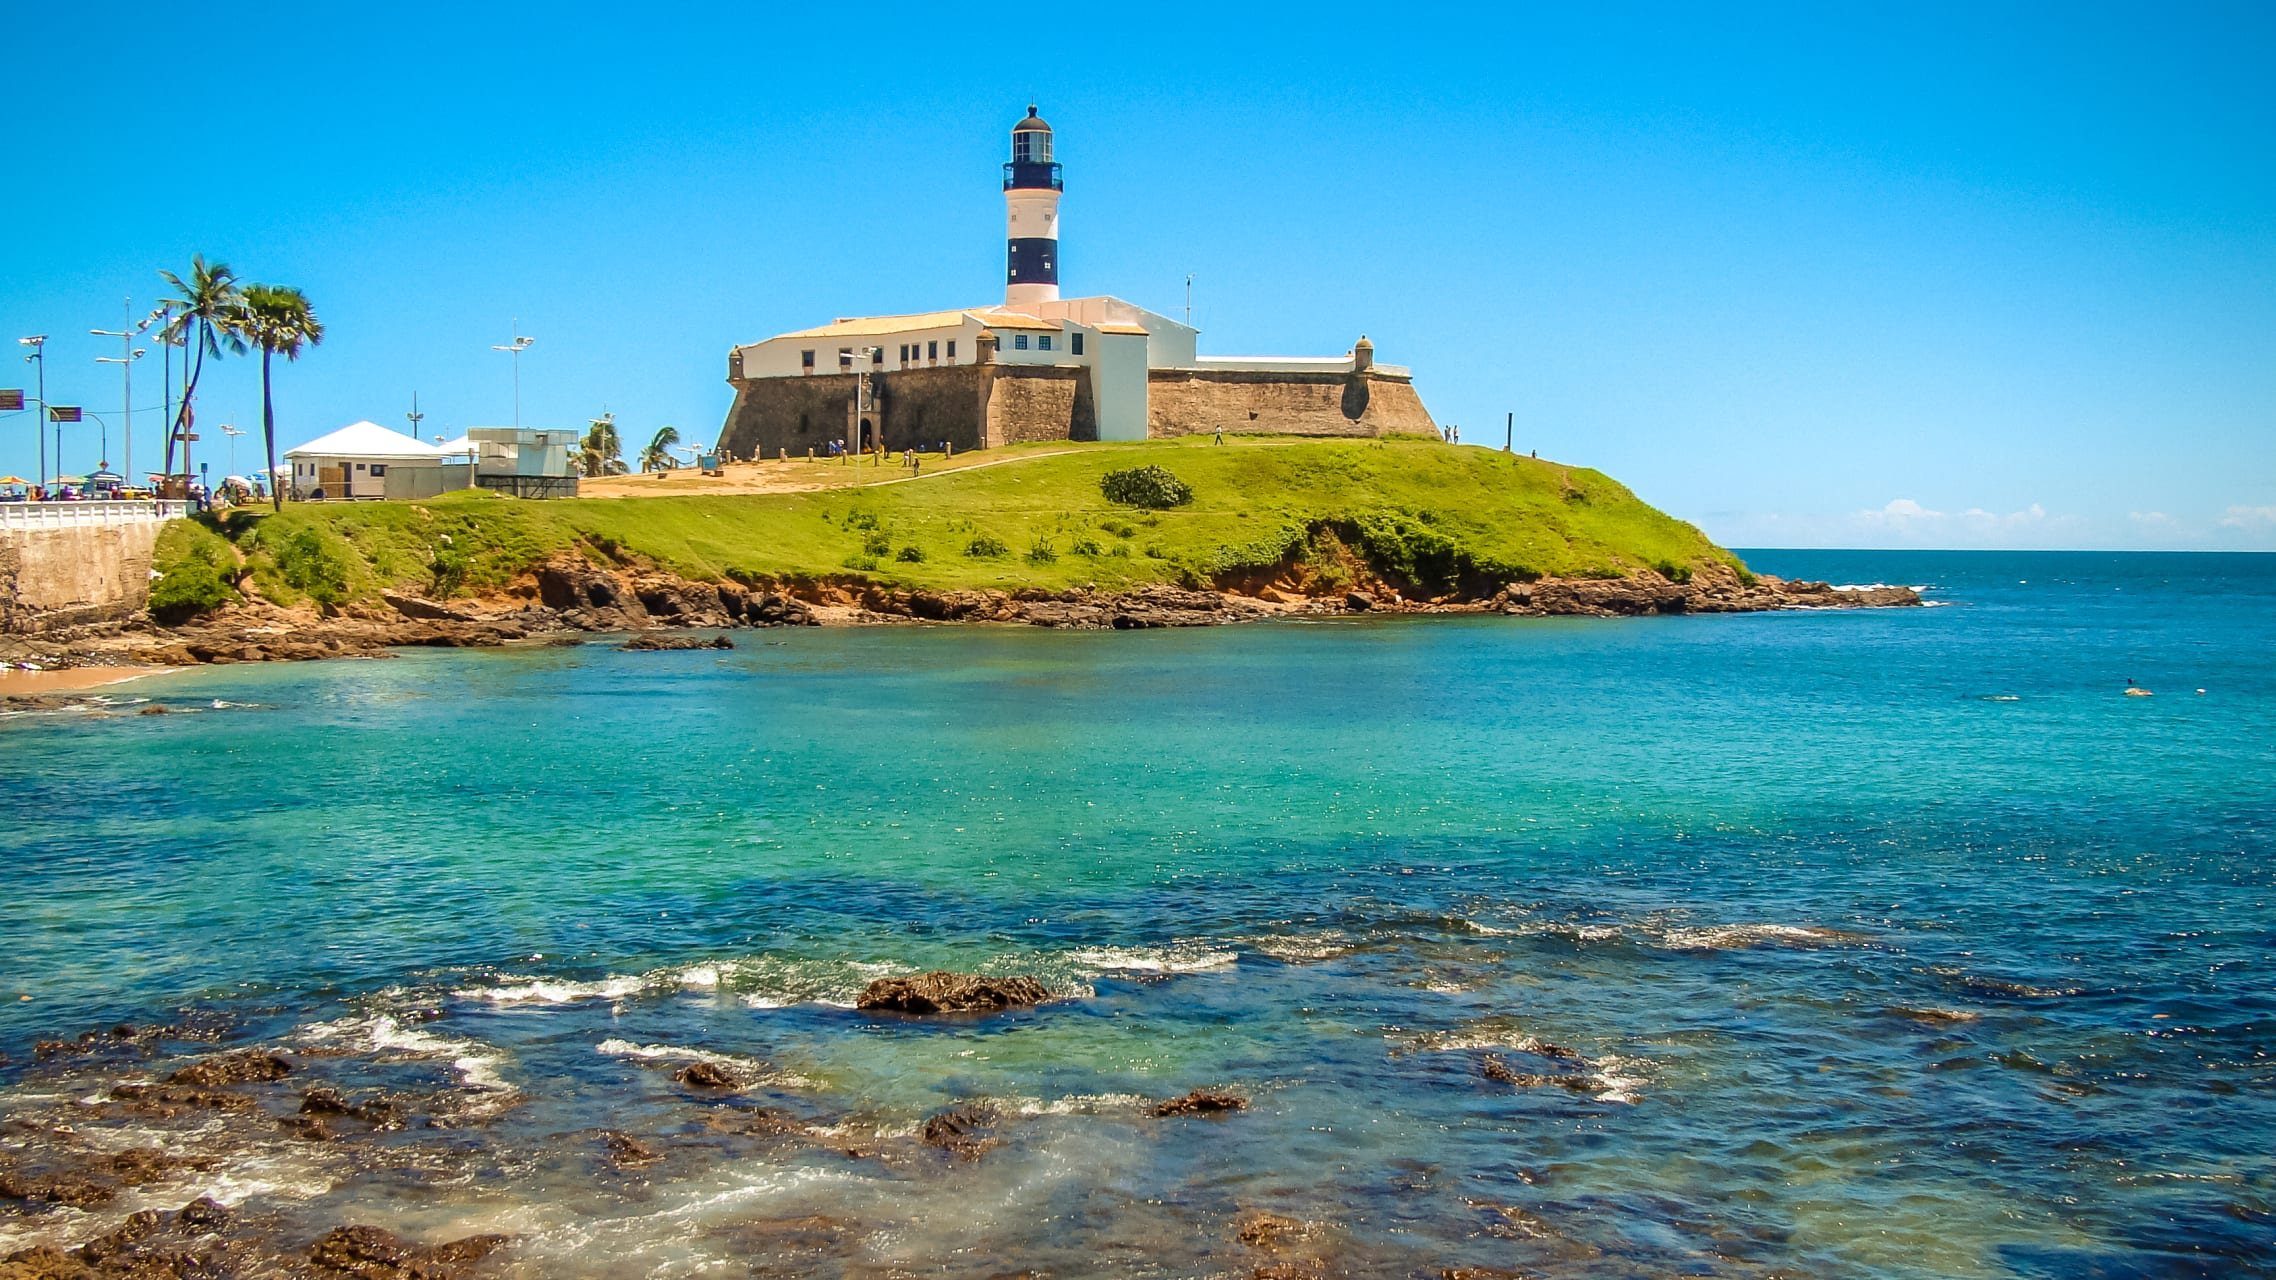 Salvador Bahia - Salvador 6 - The Oldest Light House in the Americas and the best Carnival Location in Bahia